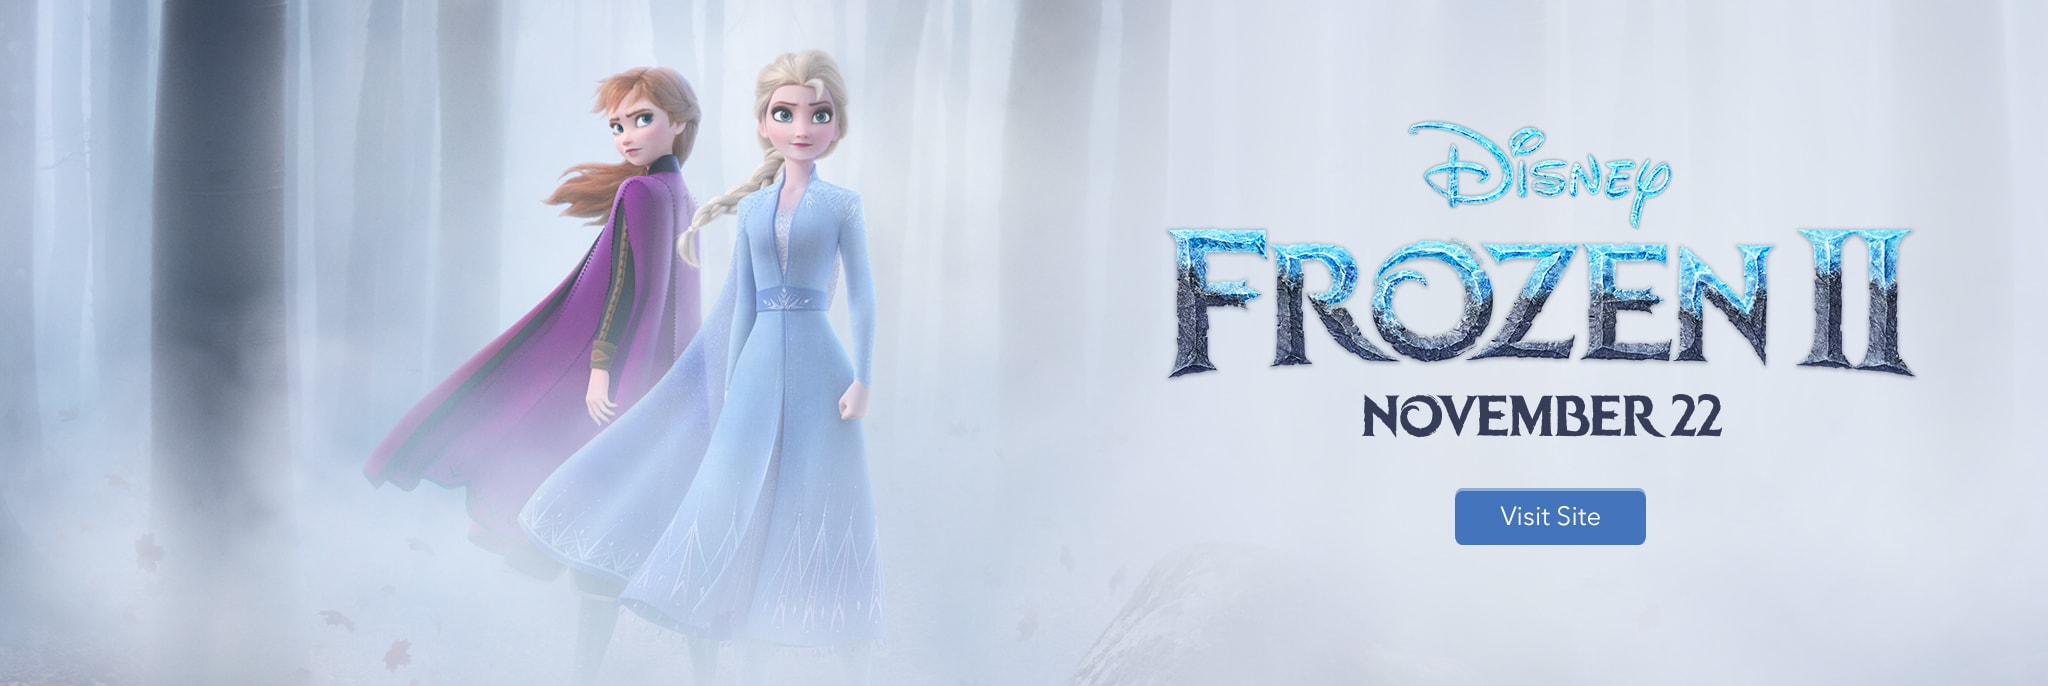 Disney Frozen II - November 22 - Visit Site